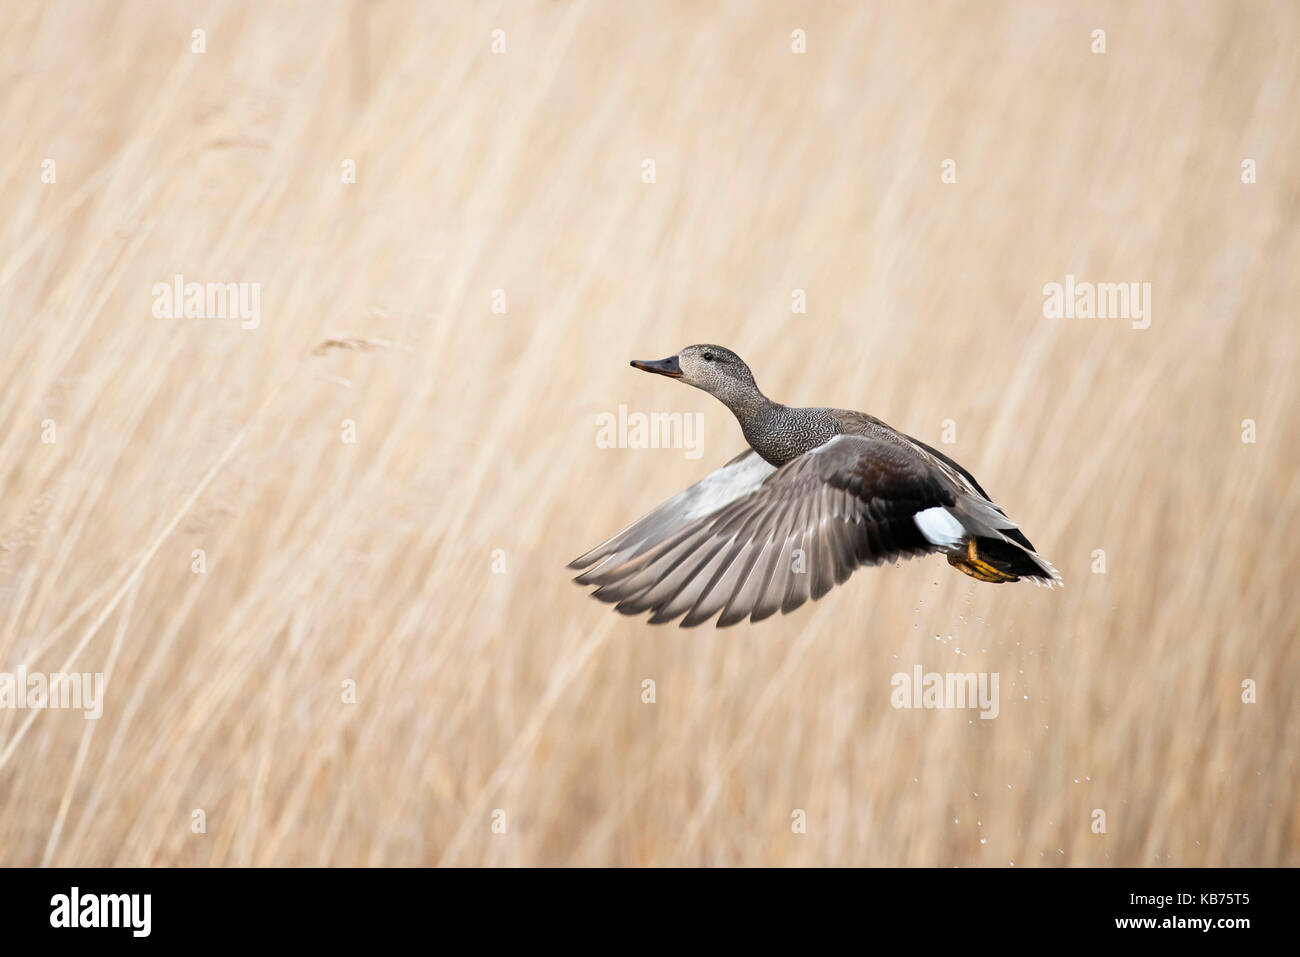 Gadwall (Anas strepera) male flying against a reed background, The Netherlands, Friesland, Ameland - Stock Image